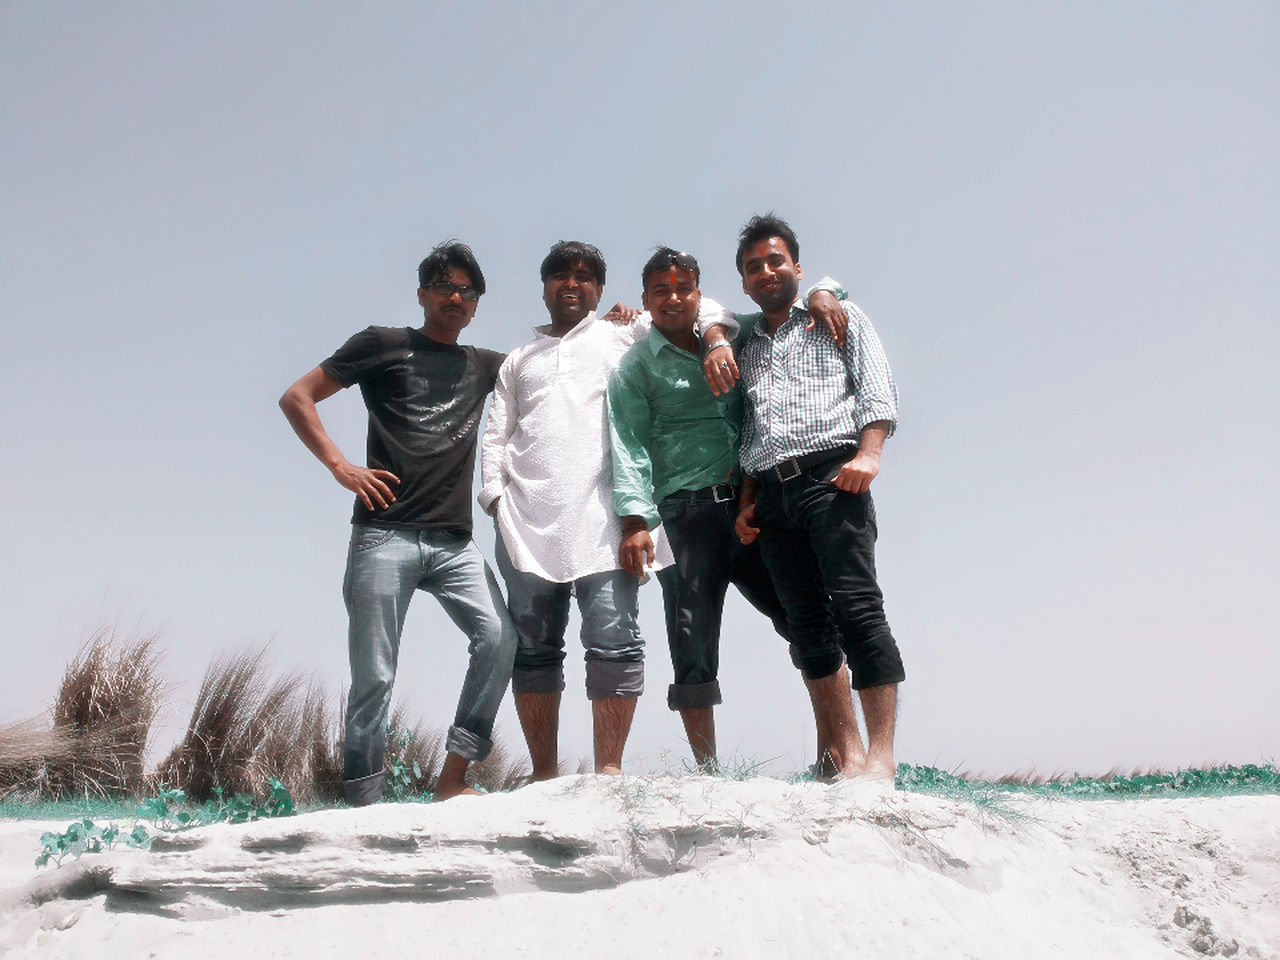 Hanging out with friend River side..@kanpur Taking Photos Enjoying Life Hanging Out